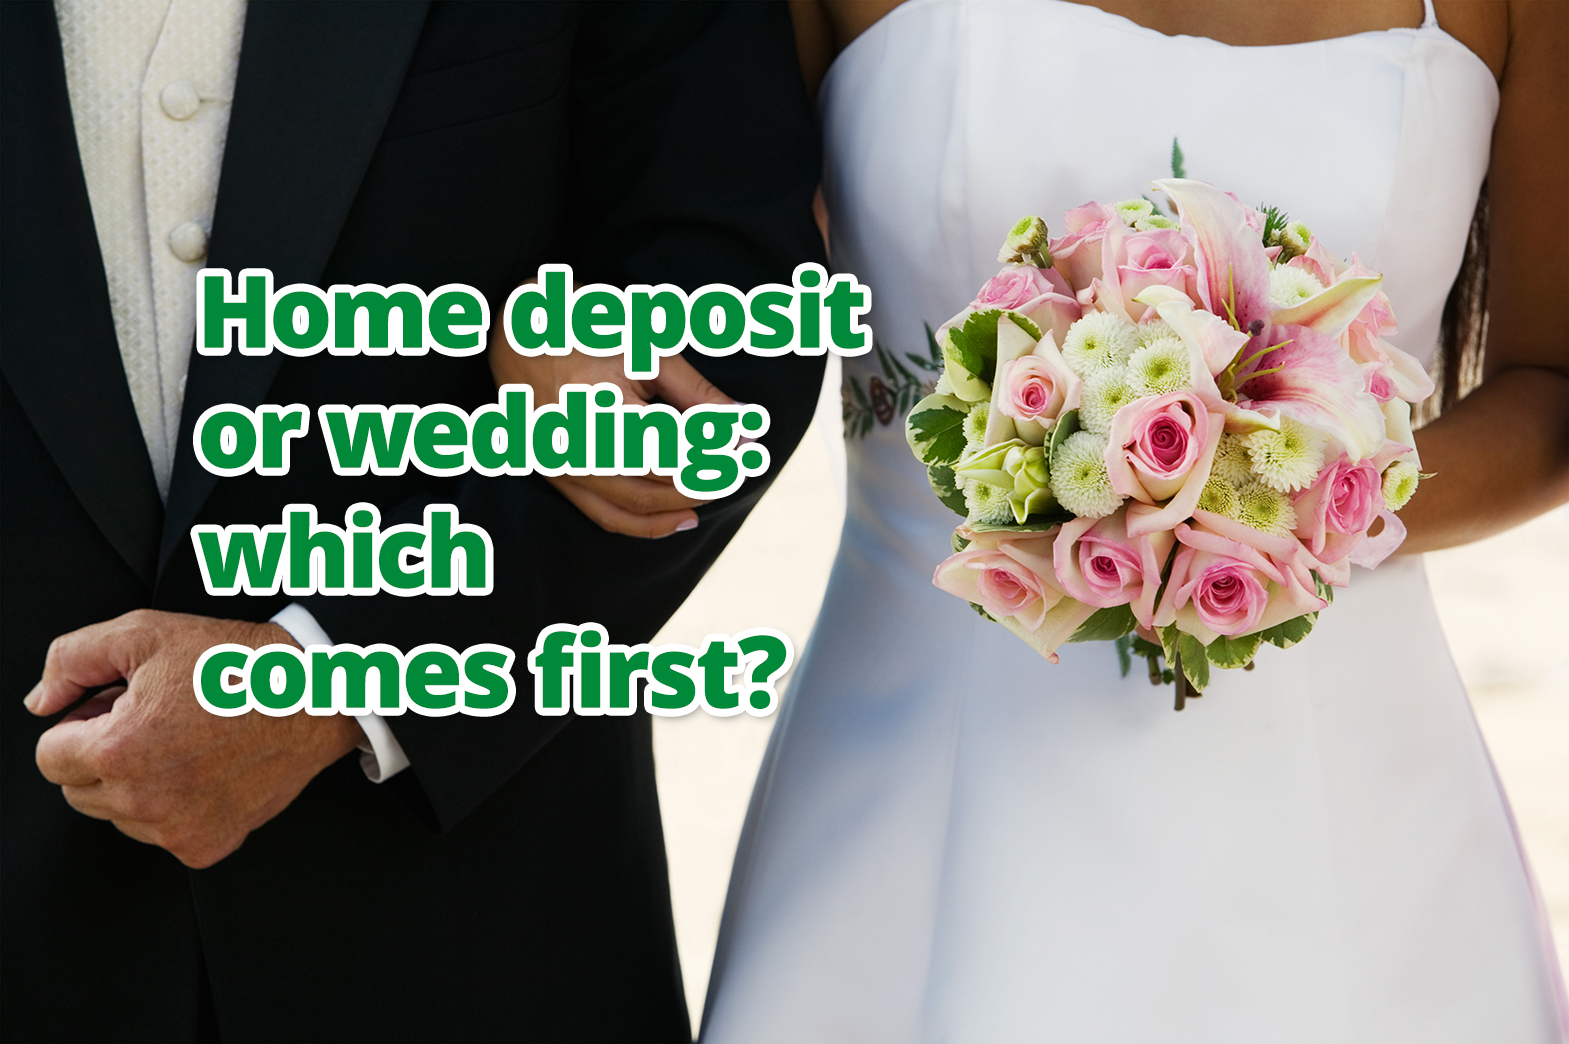 Home deposit or wedding: which comes first?